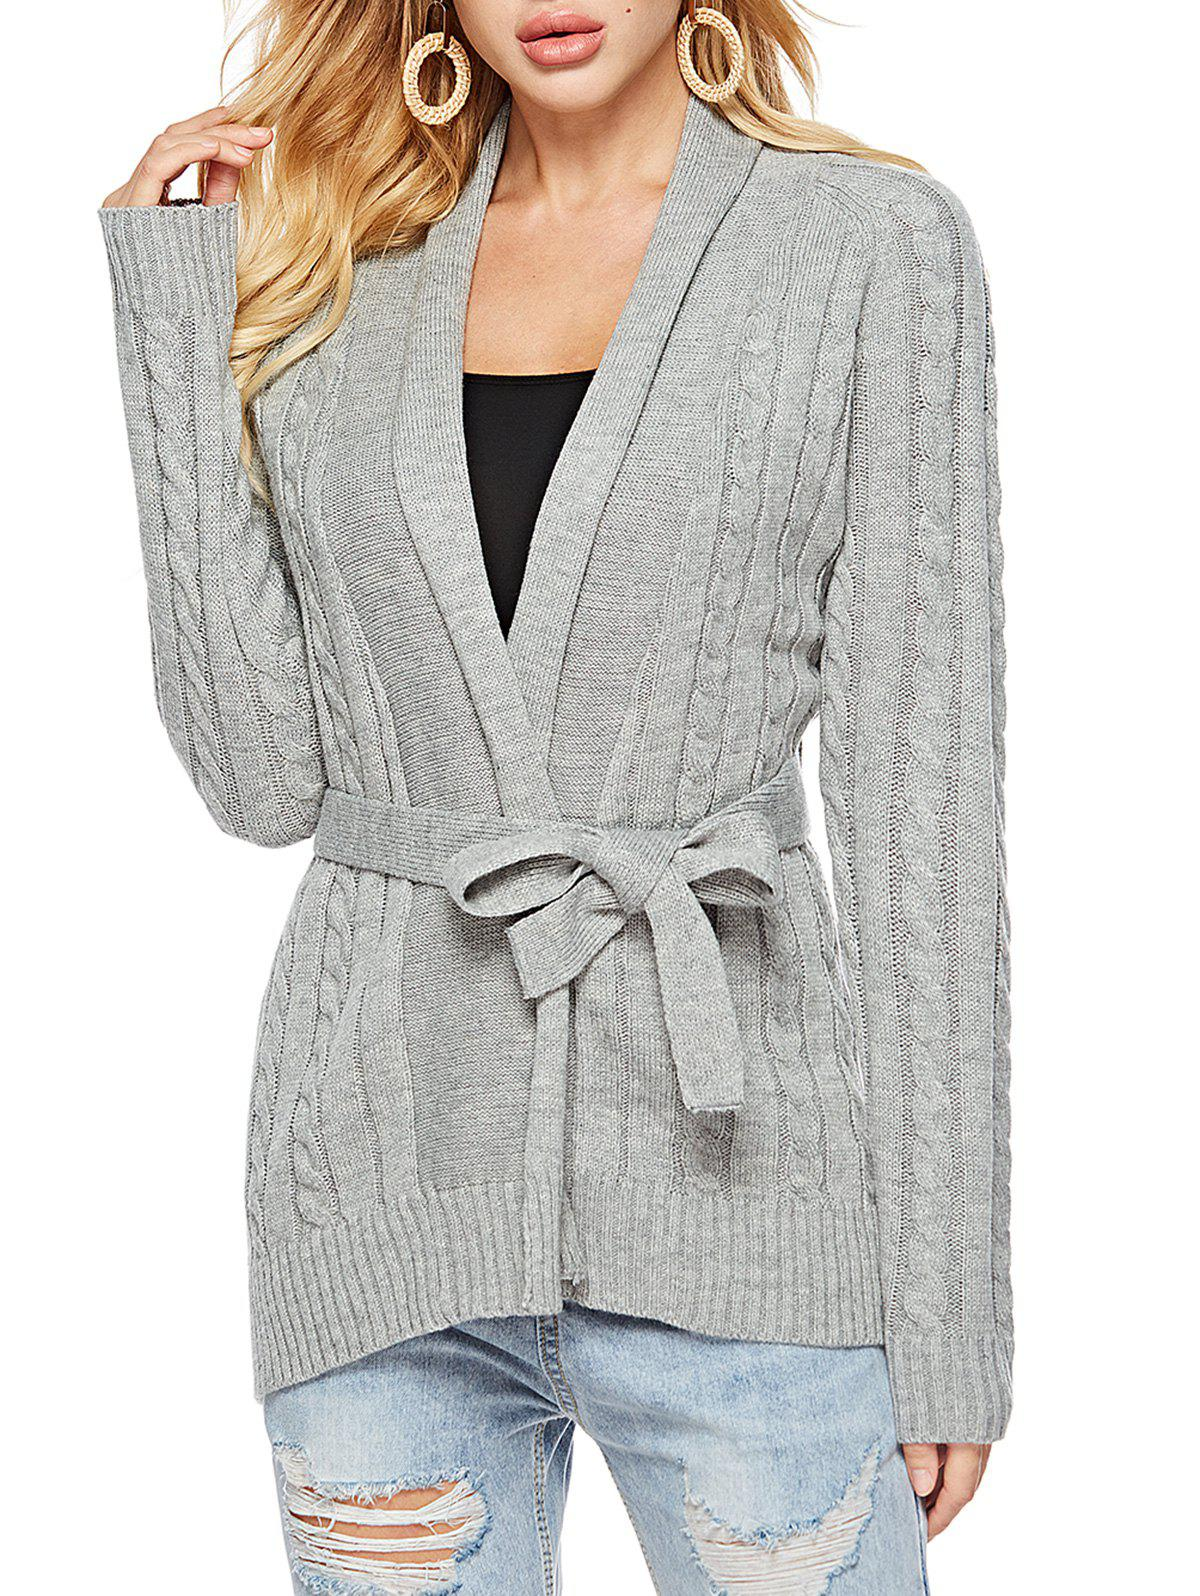 Shawl Collar Belted Cable Knit Cardigan - GRAY S